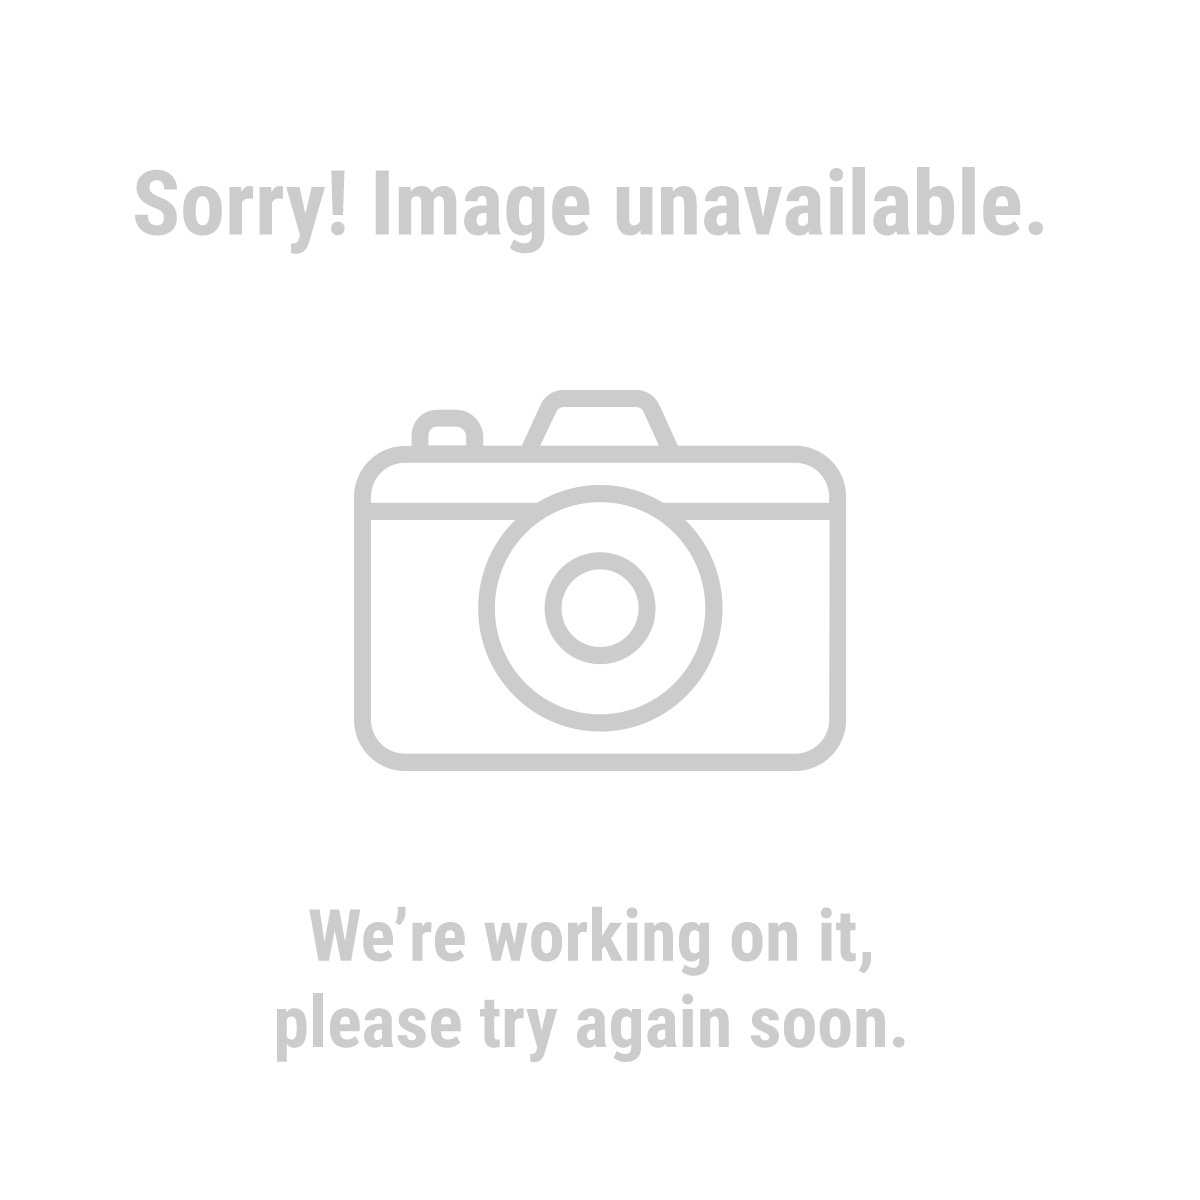 Haul-Master® 67649 10,000 Lb. Capacity Weight-Distributing Hitch System